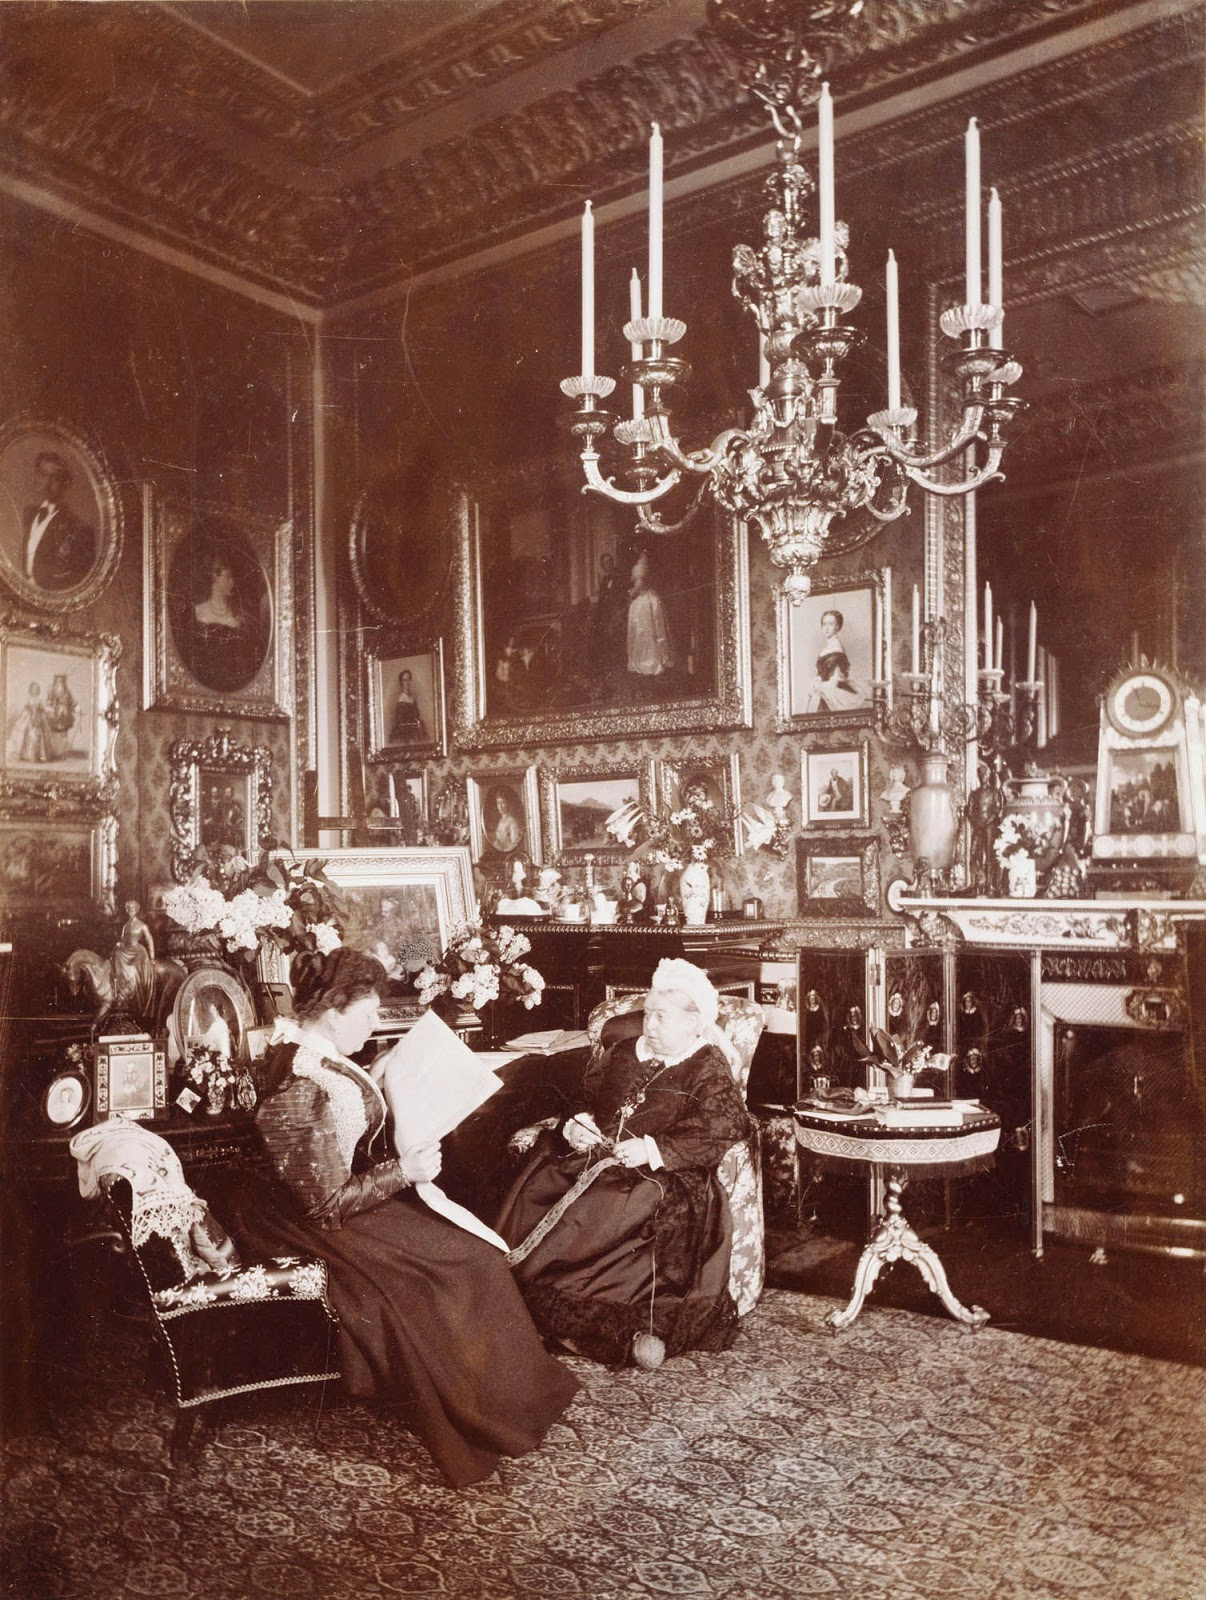 Photograph of Queen Victoria and Princess Beatrice inside Windsor Castle taken by Danish photographer Mary Steen in 1895